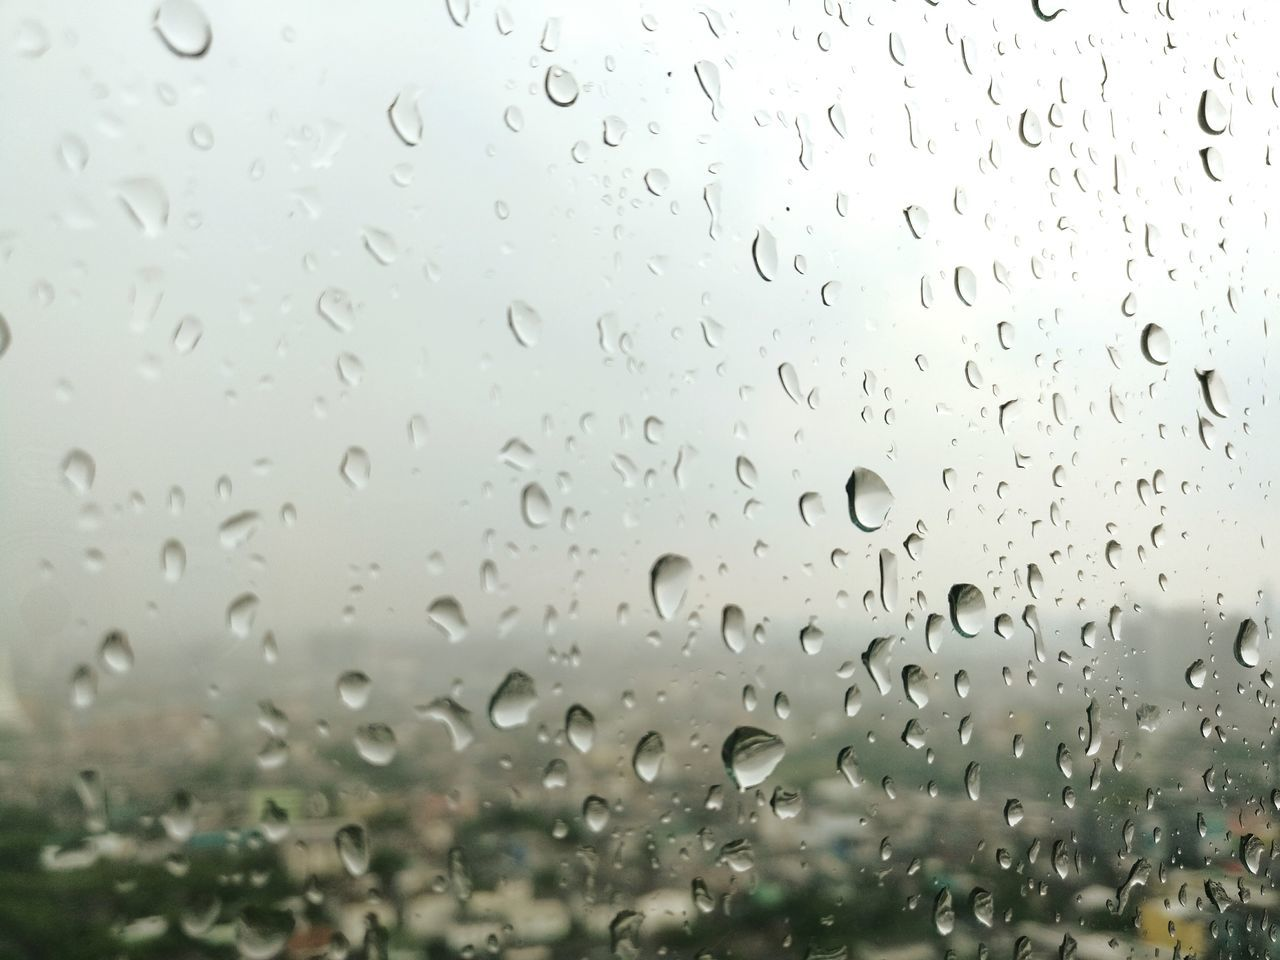 Drop Transparent Window Rain Day Wet Sky No People Nature Full Frame Rainy Season Water RainDrop Backgrounds Close-up Outdoors Drops Of Rain Drops Of Water Rain On Window EyeEmNewHere Daylight True Blue Sad Day Glass_collection Emotions Long Goodbye The Street Photographer - 2017 EyeEm Awards